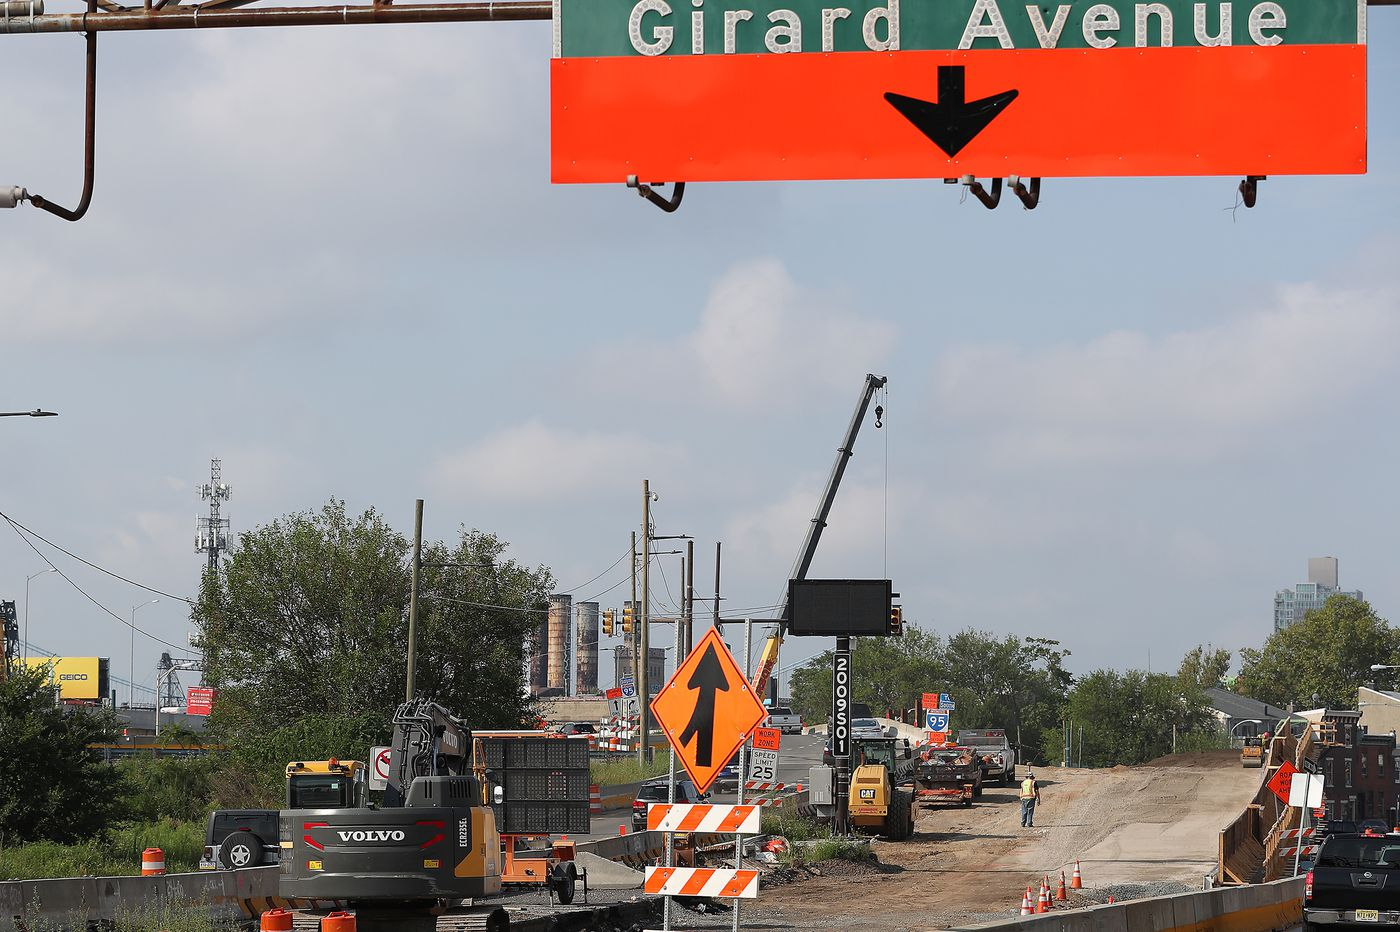 I-95 reconstruction has shut down a Girard Ave. off-ramp for two years. Fishtown is adapting, again.